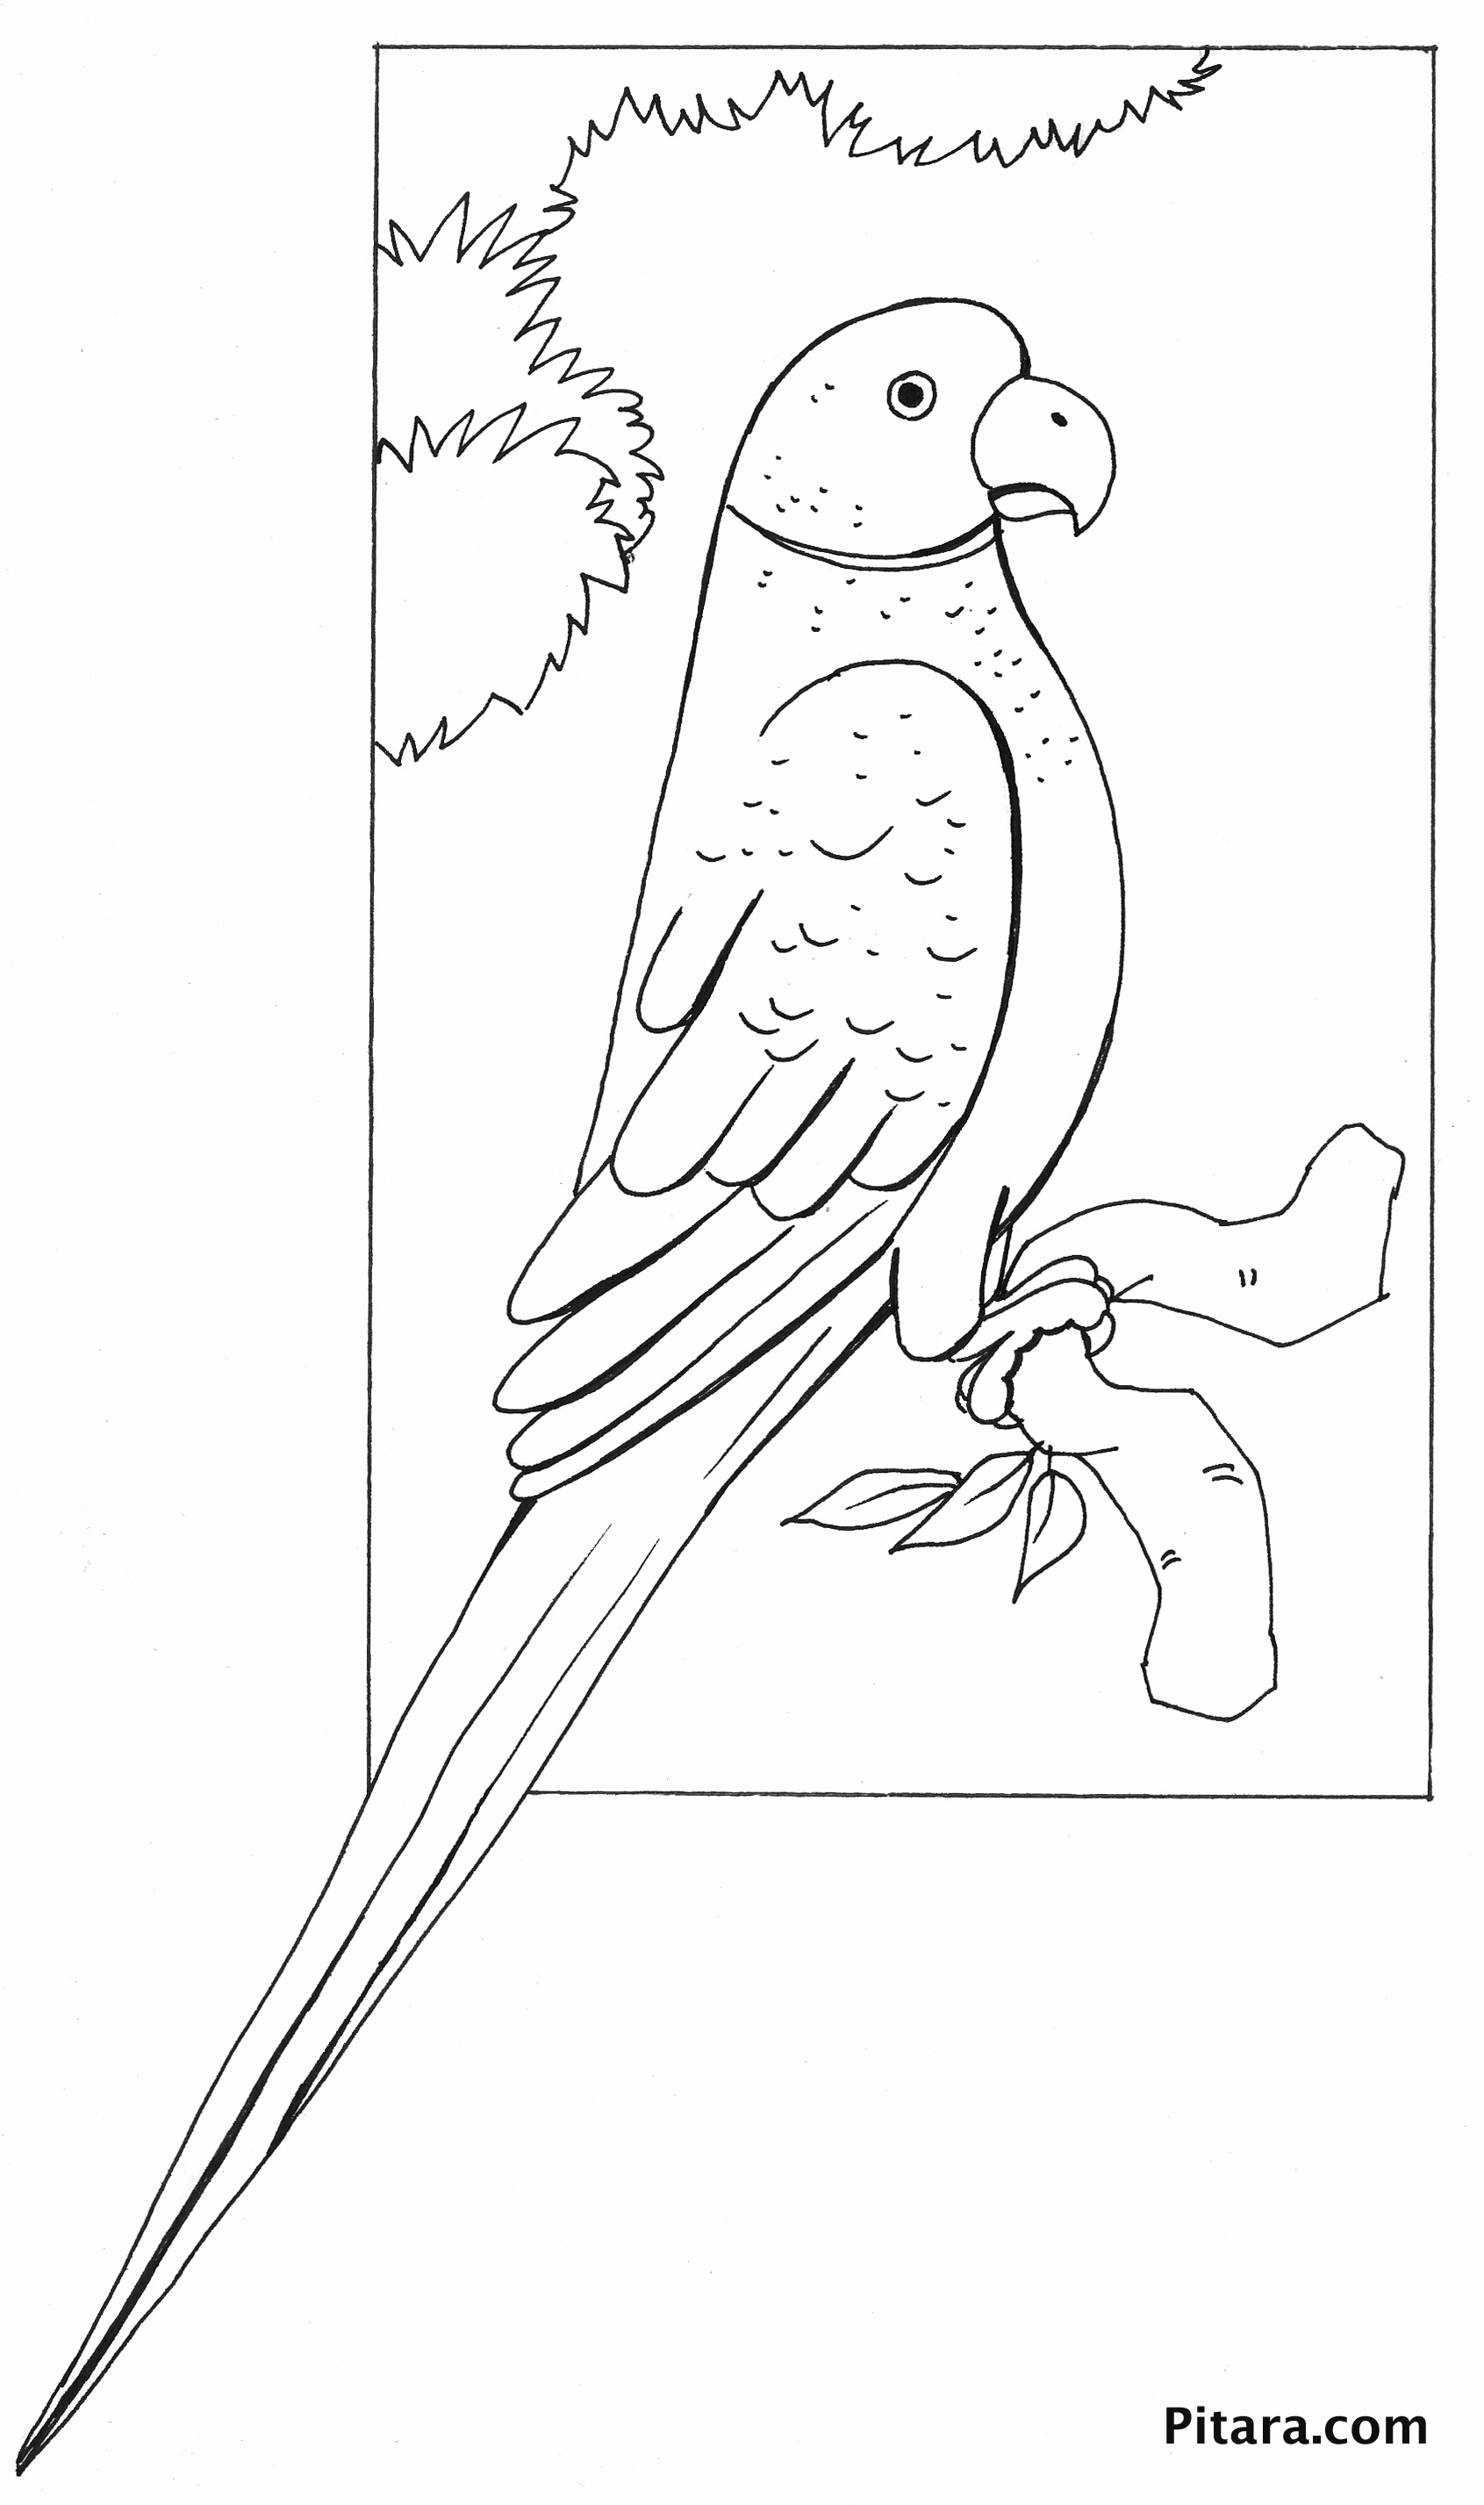 parrot pictures to colour free printable parrot coloring pages for kids to colour pictures parrot 1 1